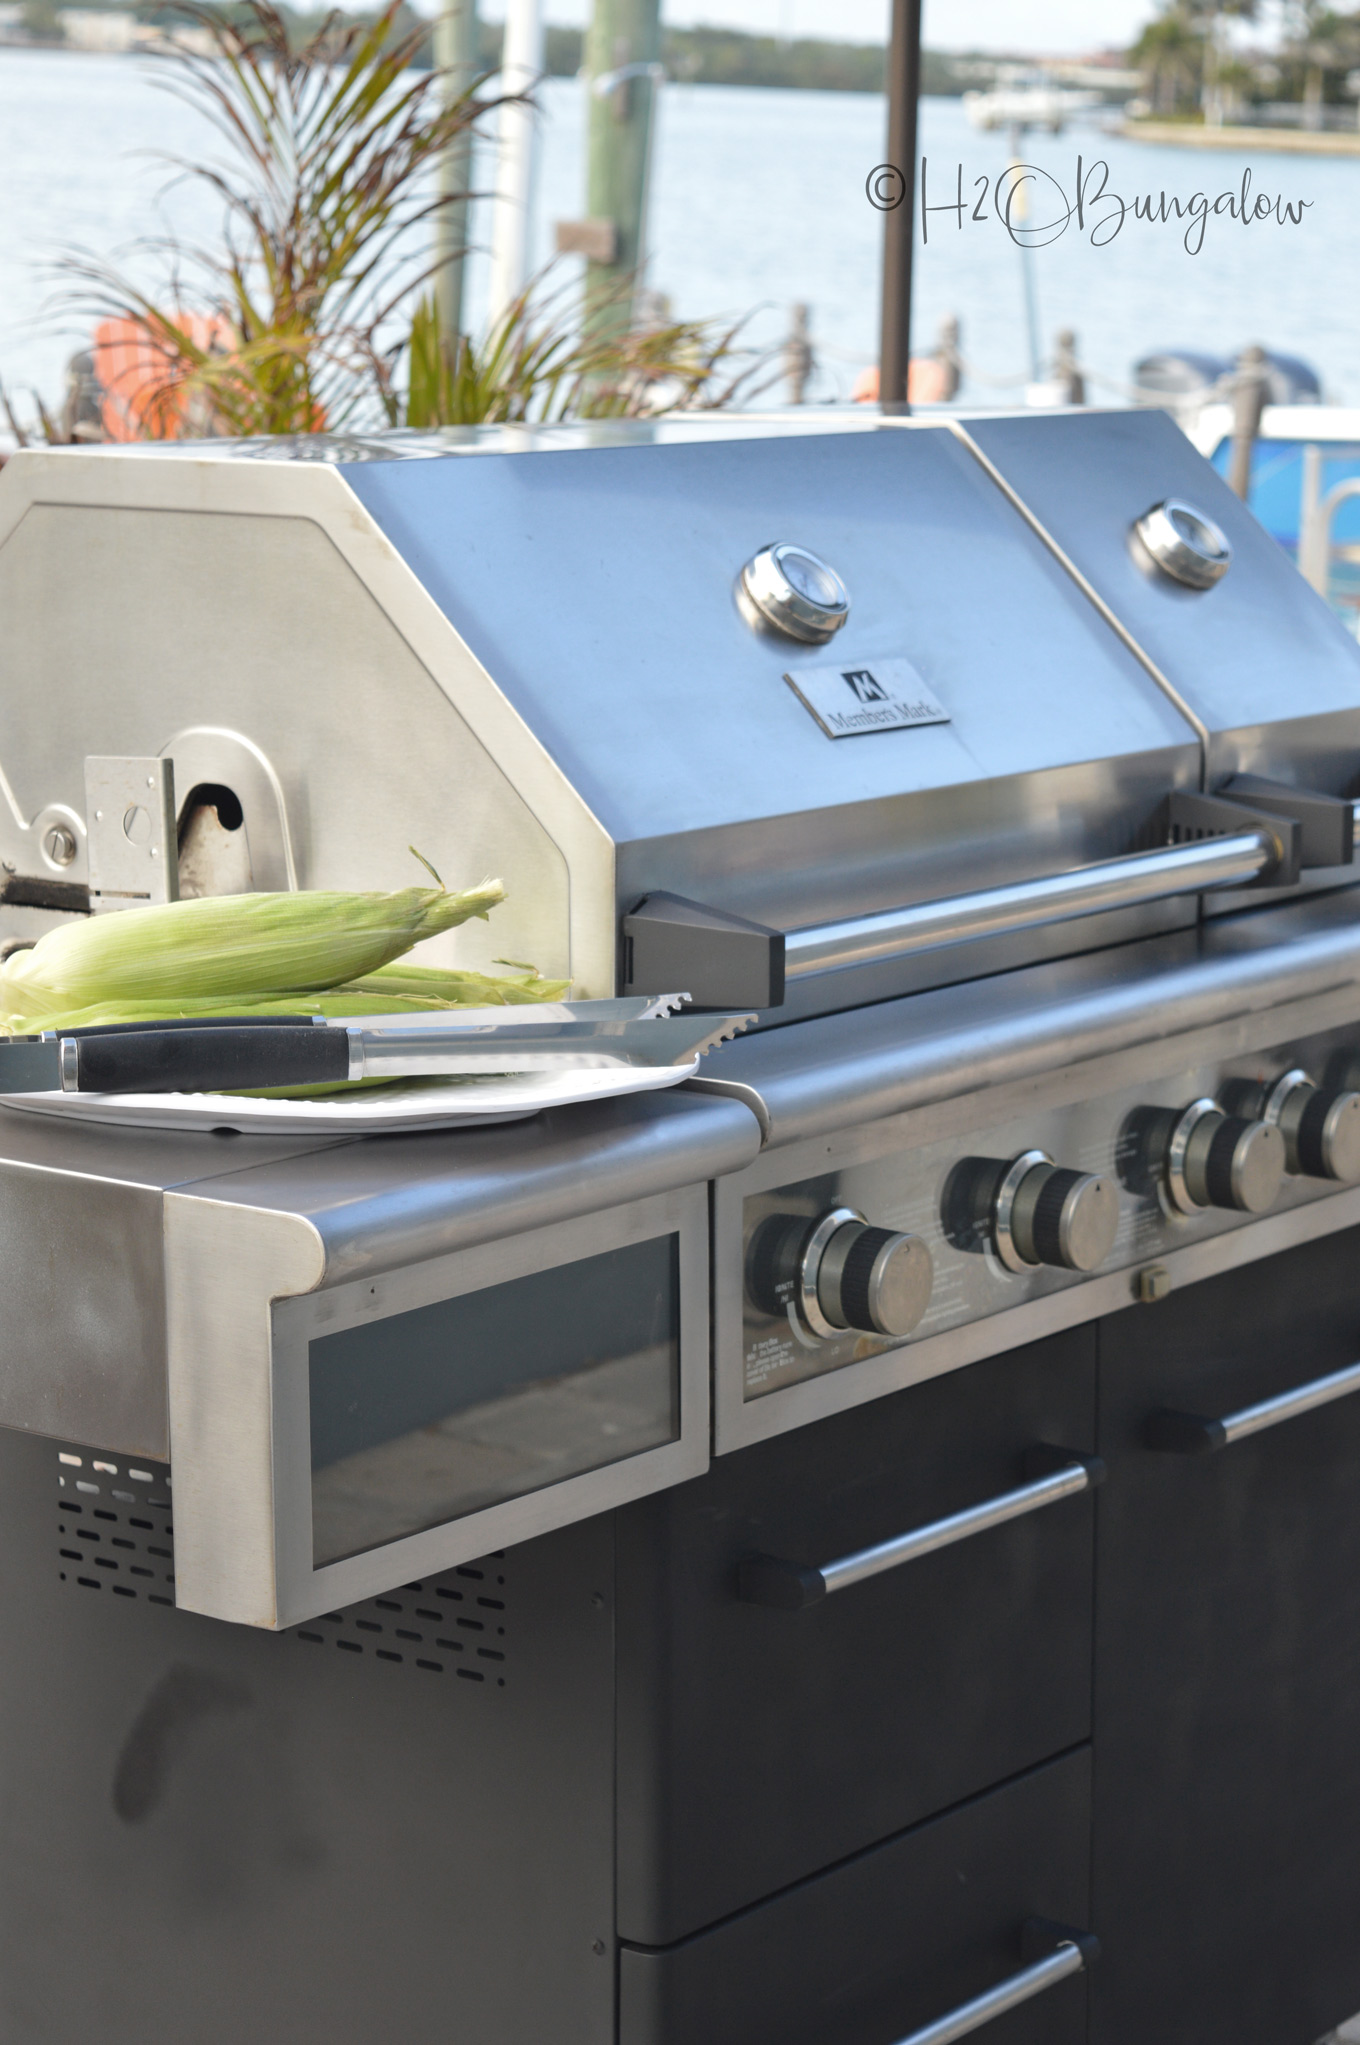 How To Makeover a Barbecue Grill via @h2obungalow